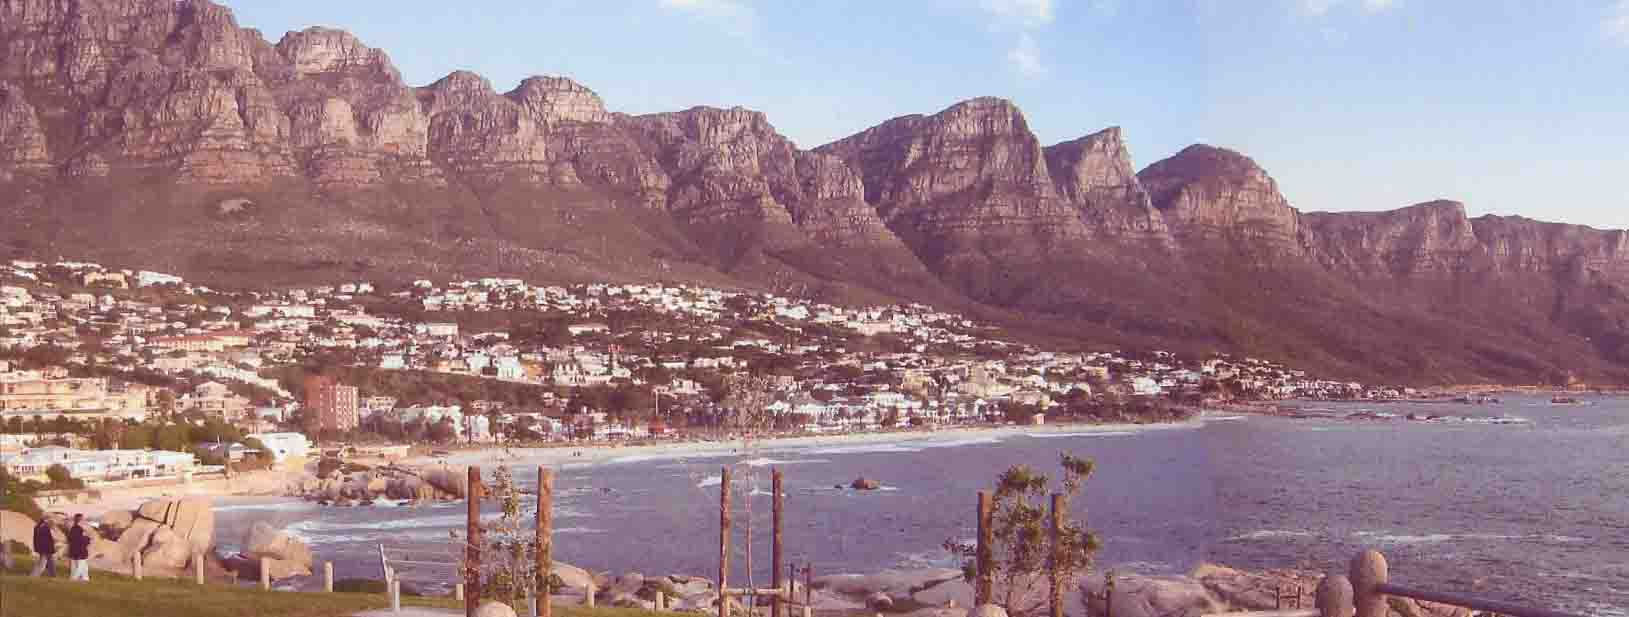 Camps Bay, Cape Town, South Africa, 2007.